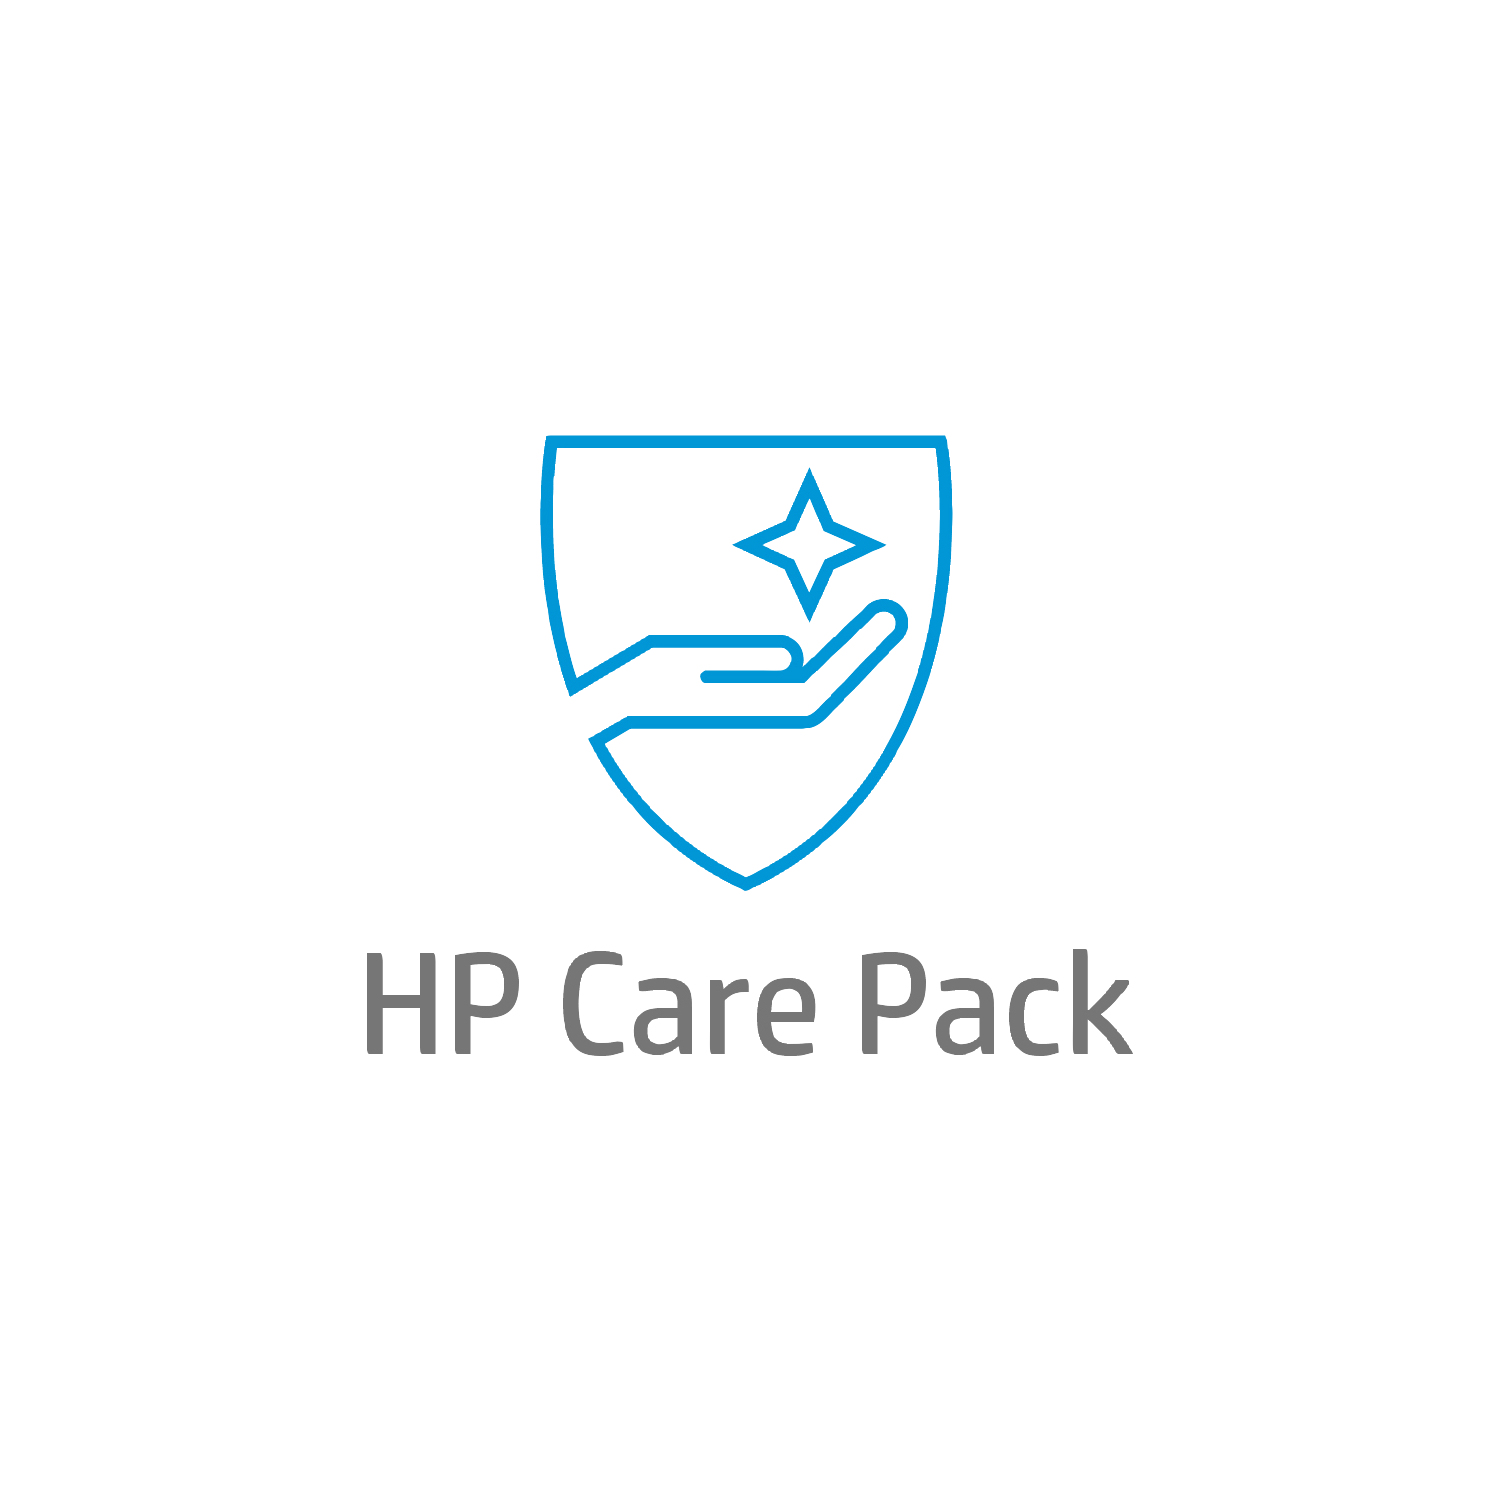 HP 2 Year Absolute Control - 1-2499 Unit Volume Service